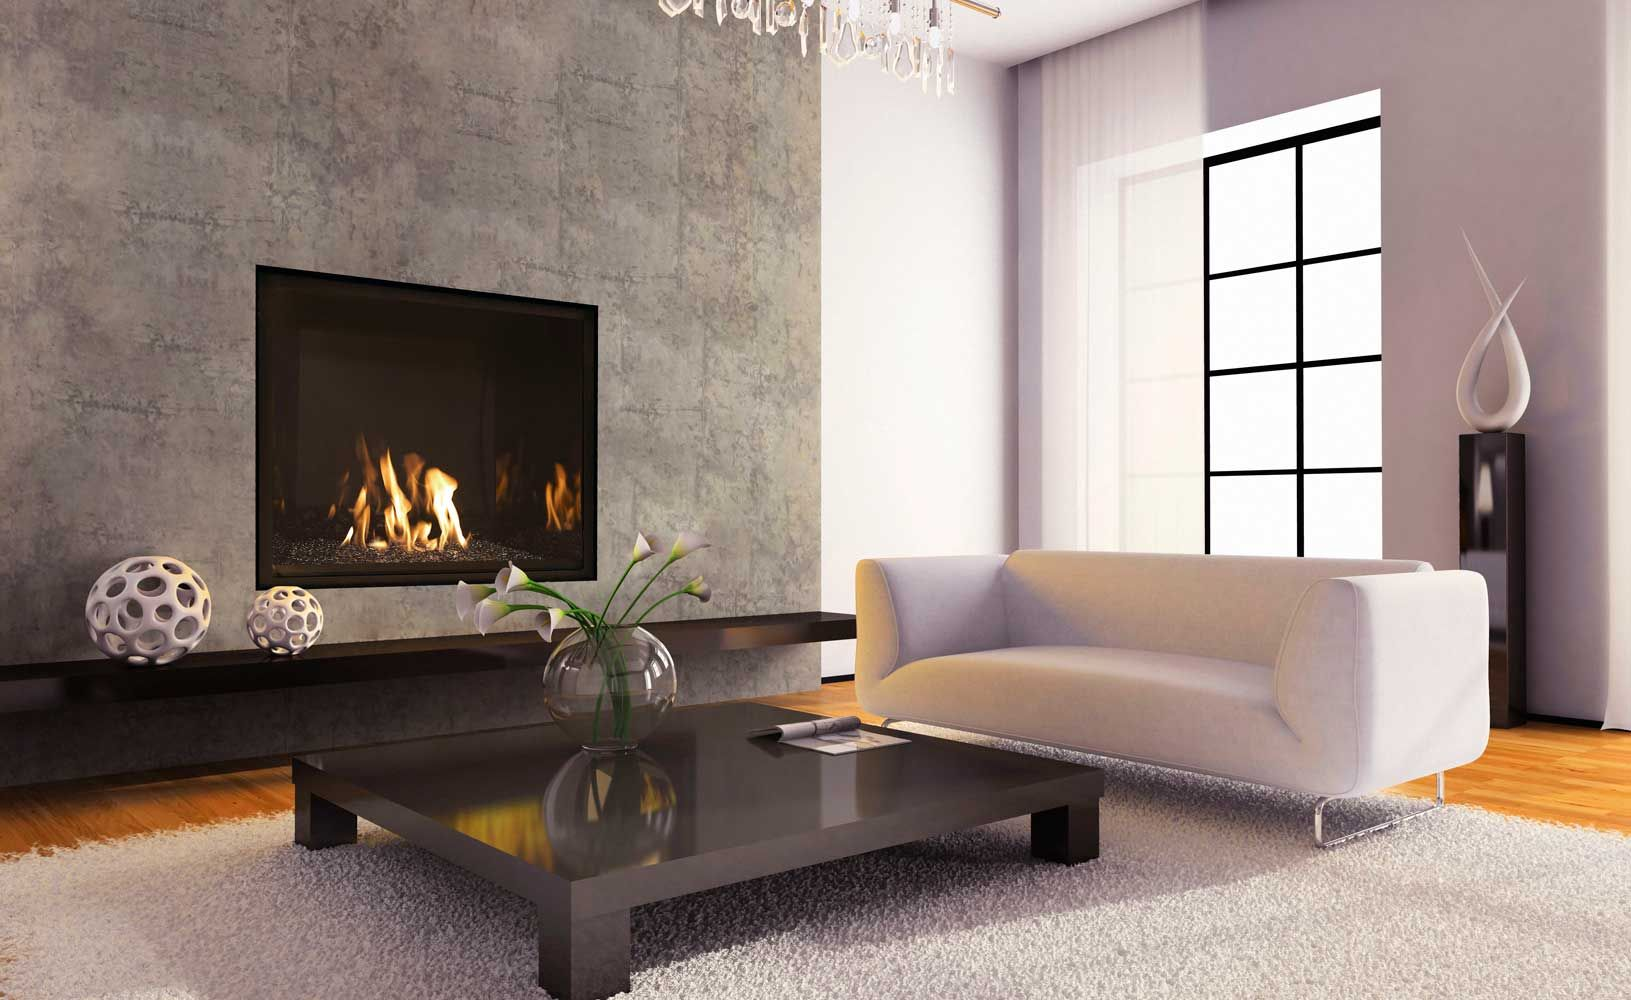 Cool Modern Fireplace Design Ideas Largest Home Design Picture Inspirations Pitcheantrous